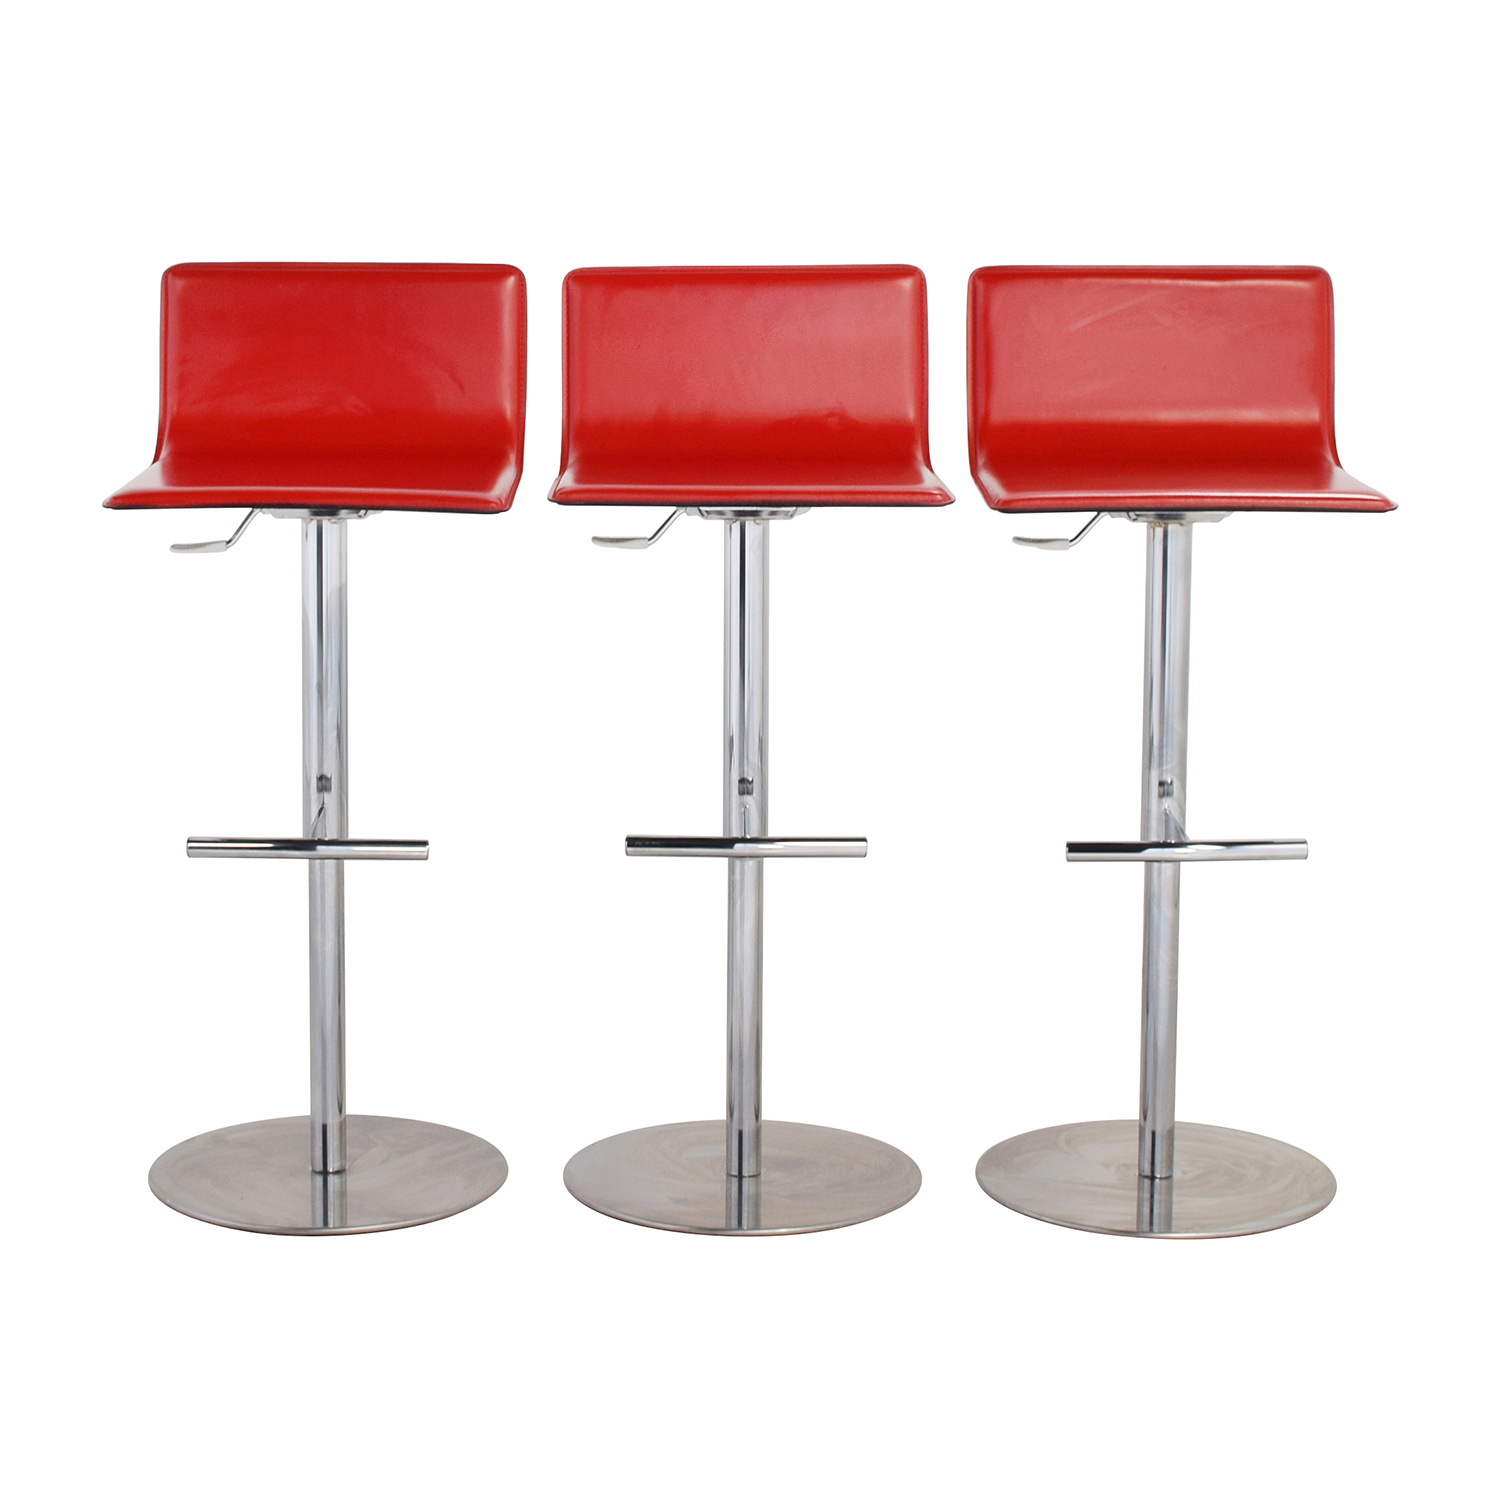 shop Trabaldo Italian Red Leather Adjustable Bar Stools Trabaldo Stools